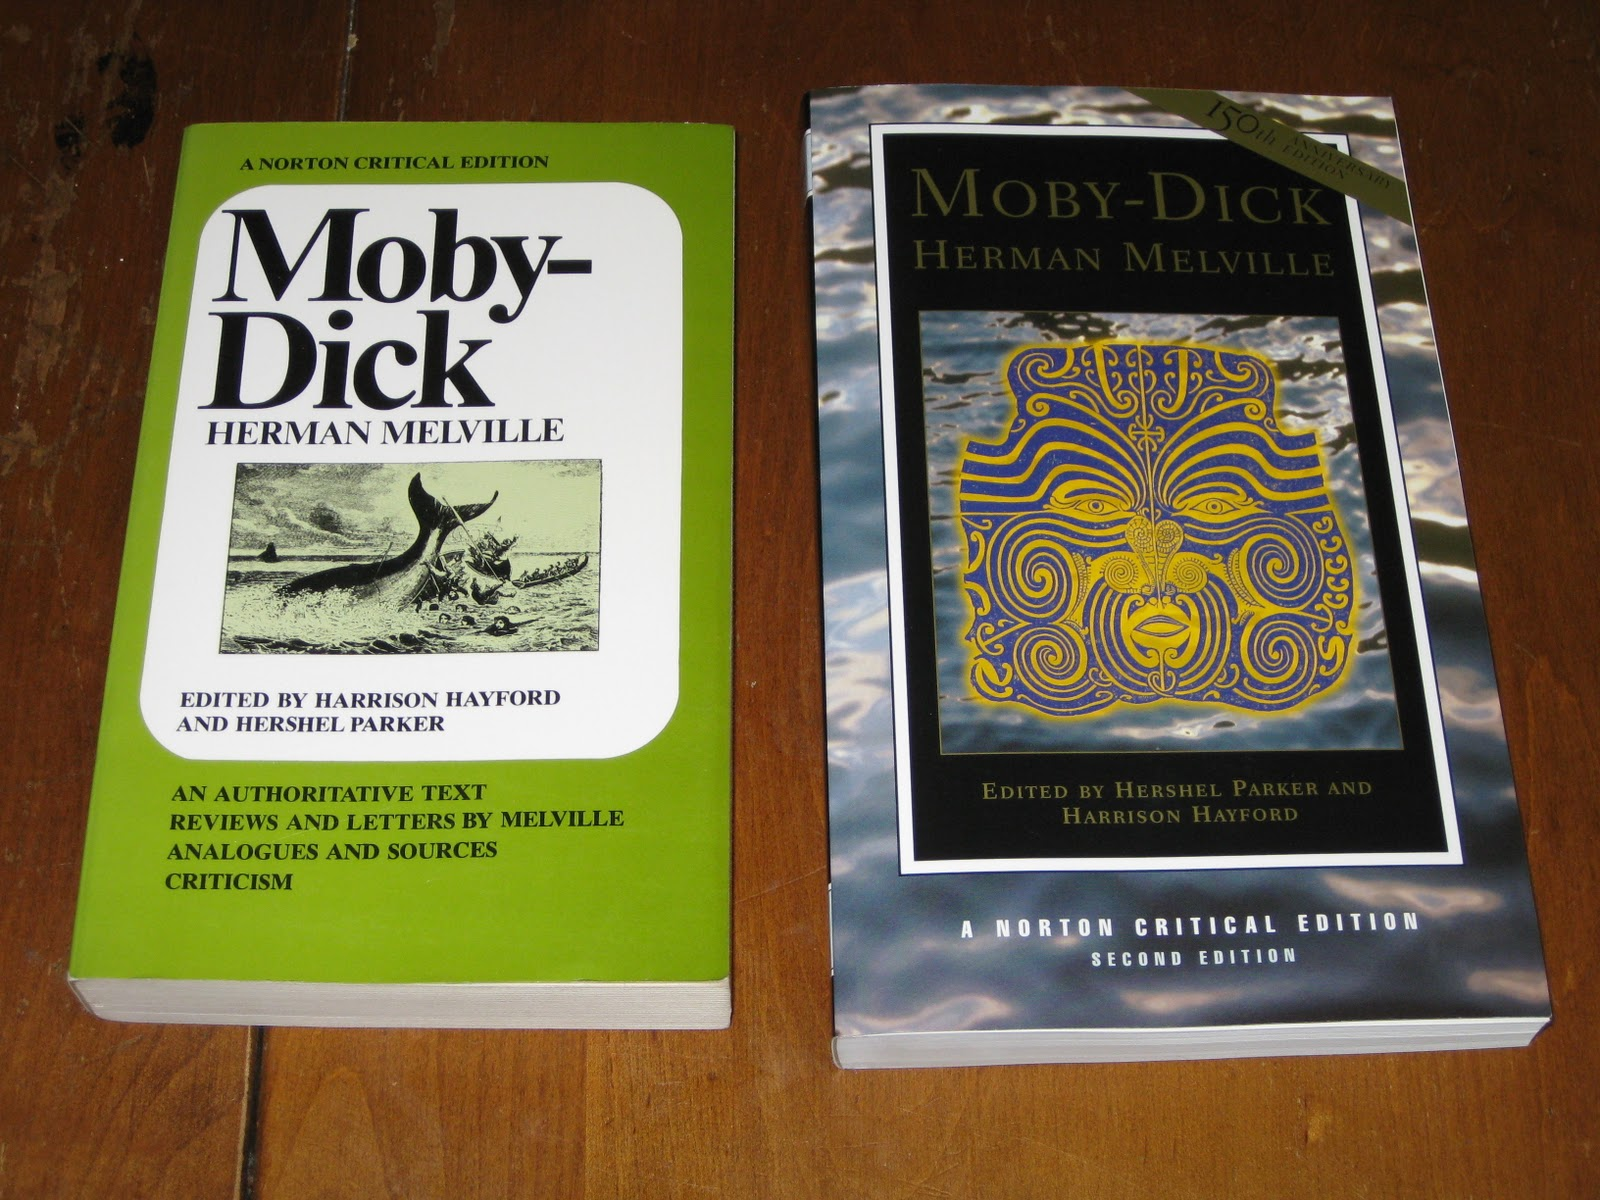 moby dick 3 essay The endless depths of moby-dick symbolism in his essay, gilbert looks moby-dick might as well be that enigmatic doubloon nailed to the main-mast.